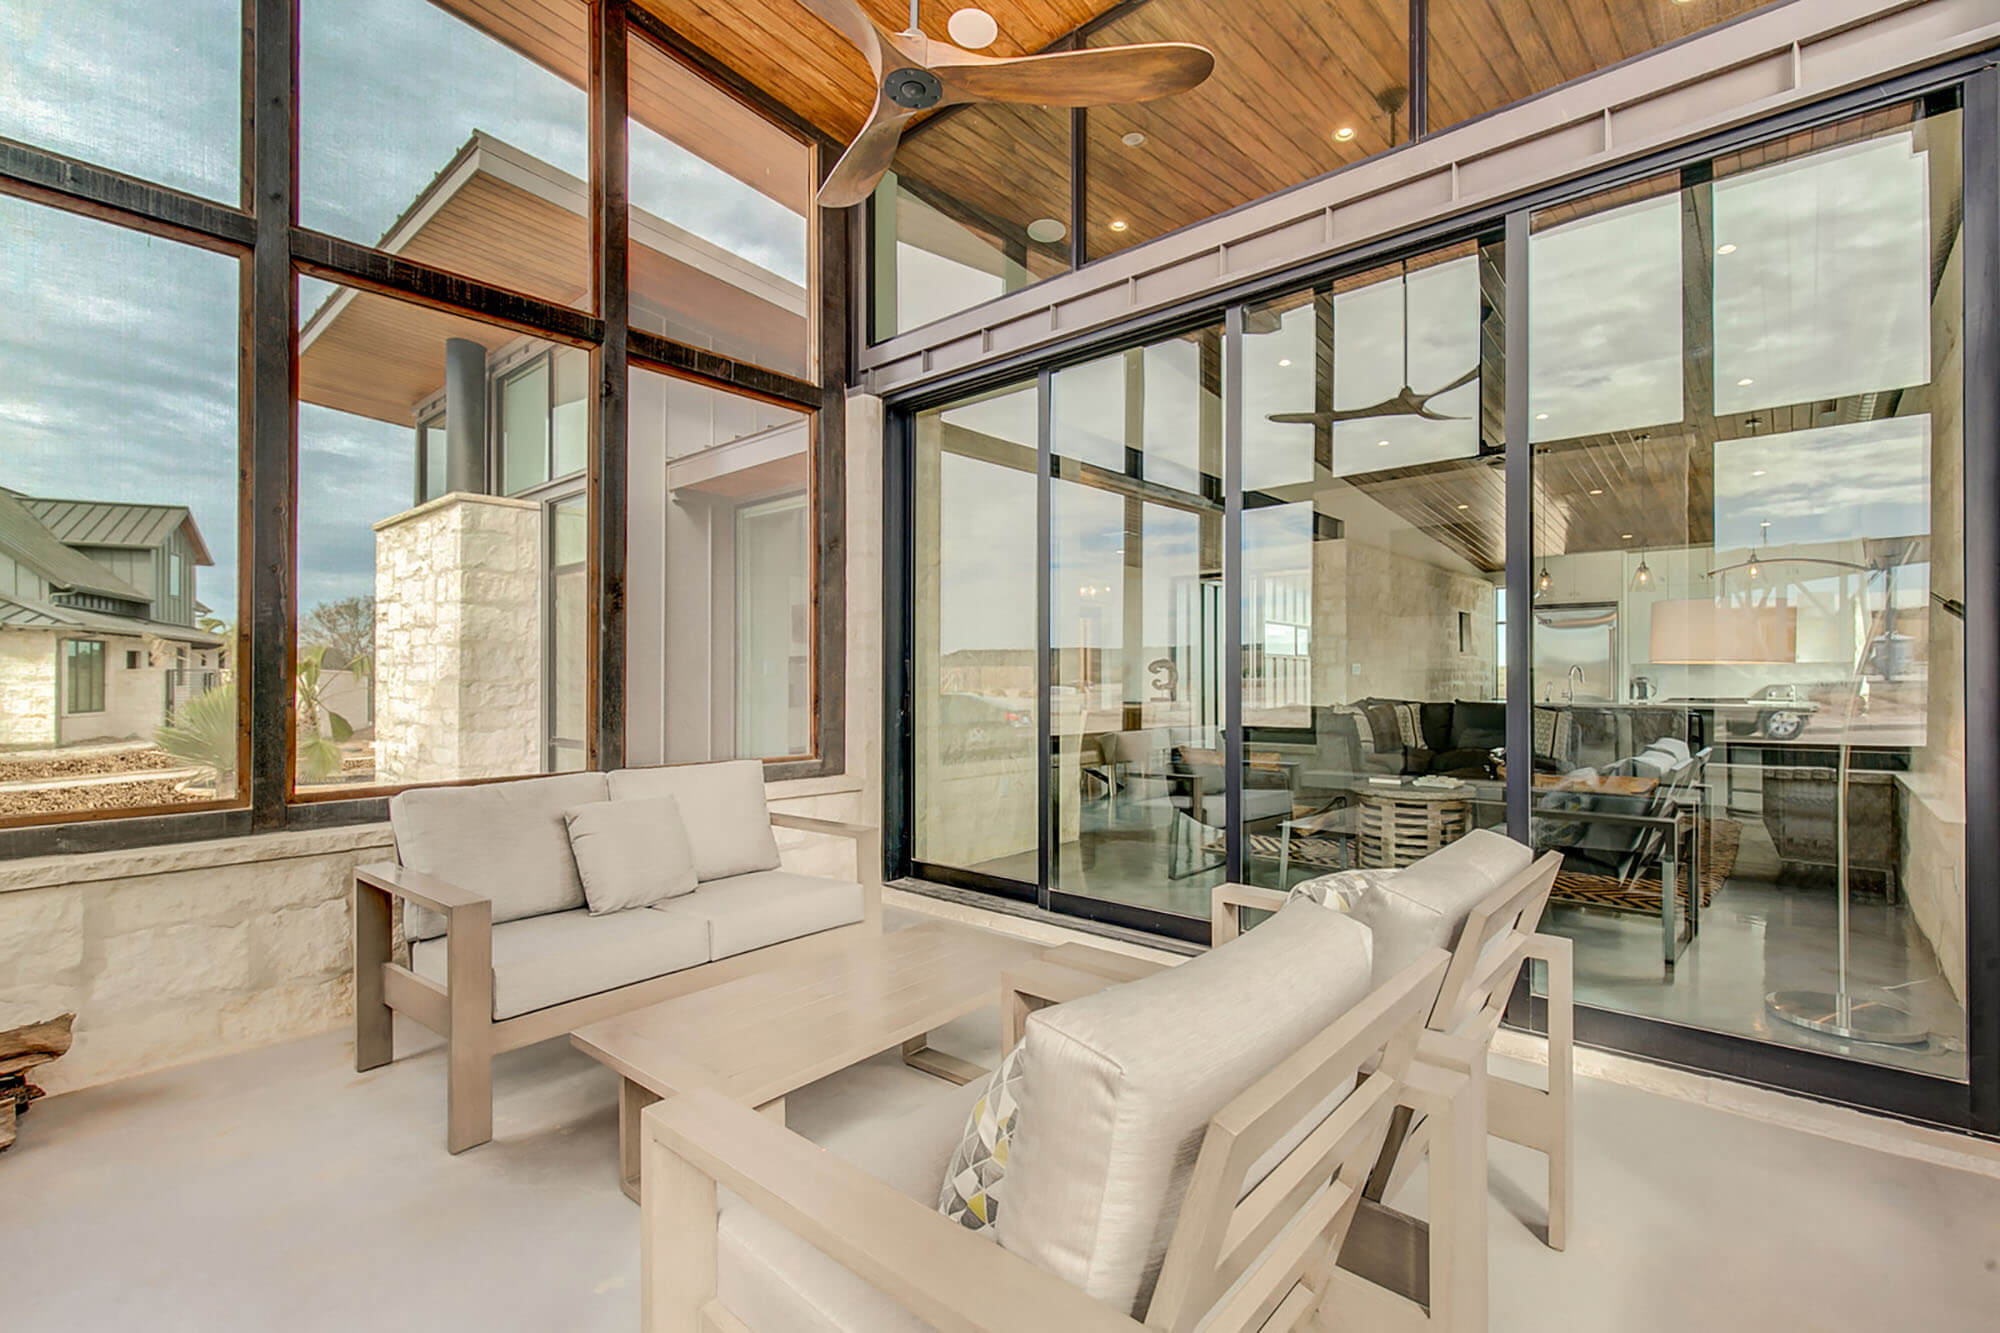 Steve-Bumpas-Custom_Homes-The-Residences-at-Rough-Creek-Lodge-The-Brook-Lot-17-07-Luxury-Ranch-Homes-for-Sale-in-North-Texas.jpg